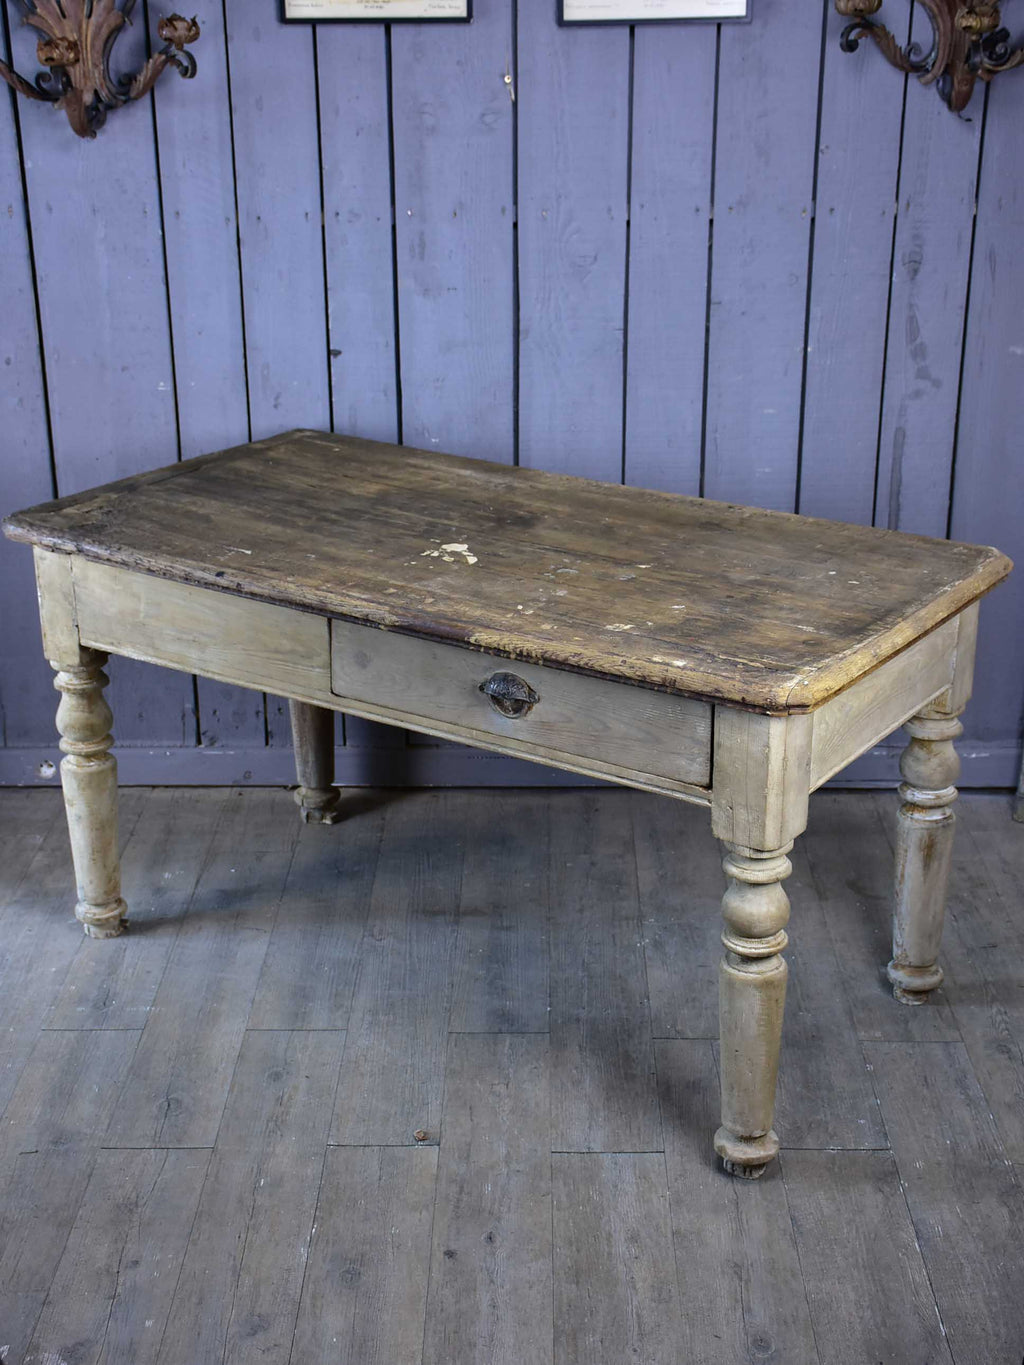 Rustic French butcher's table with drawer